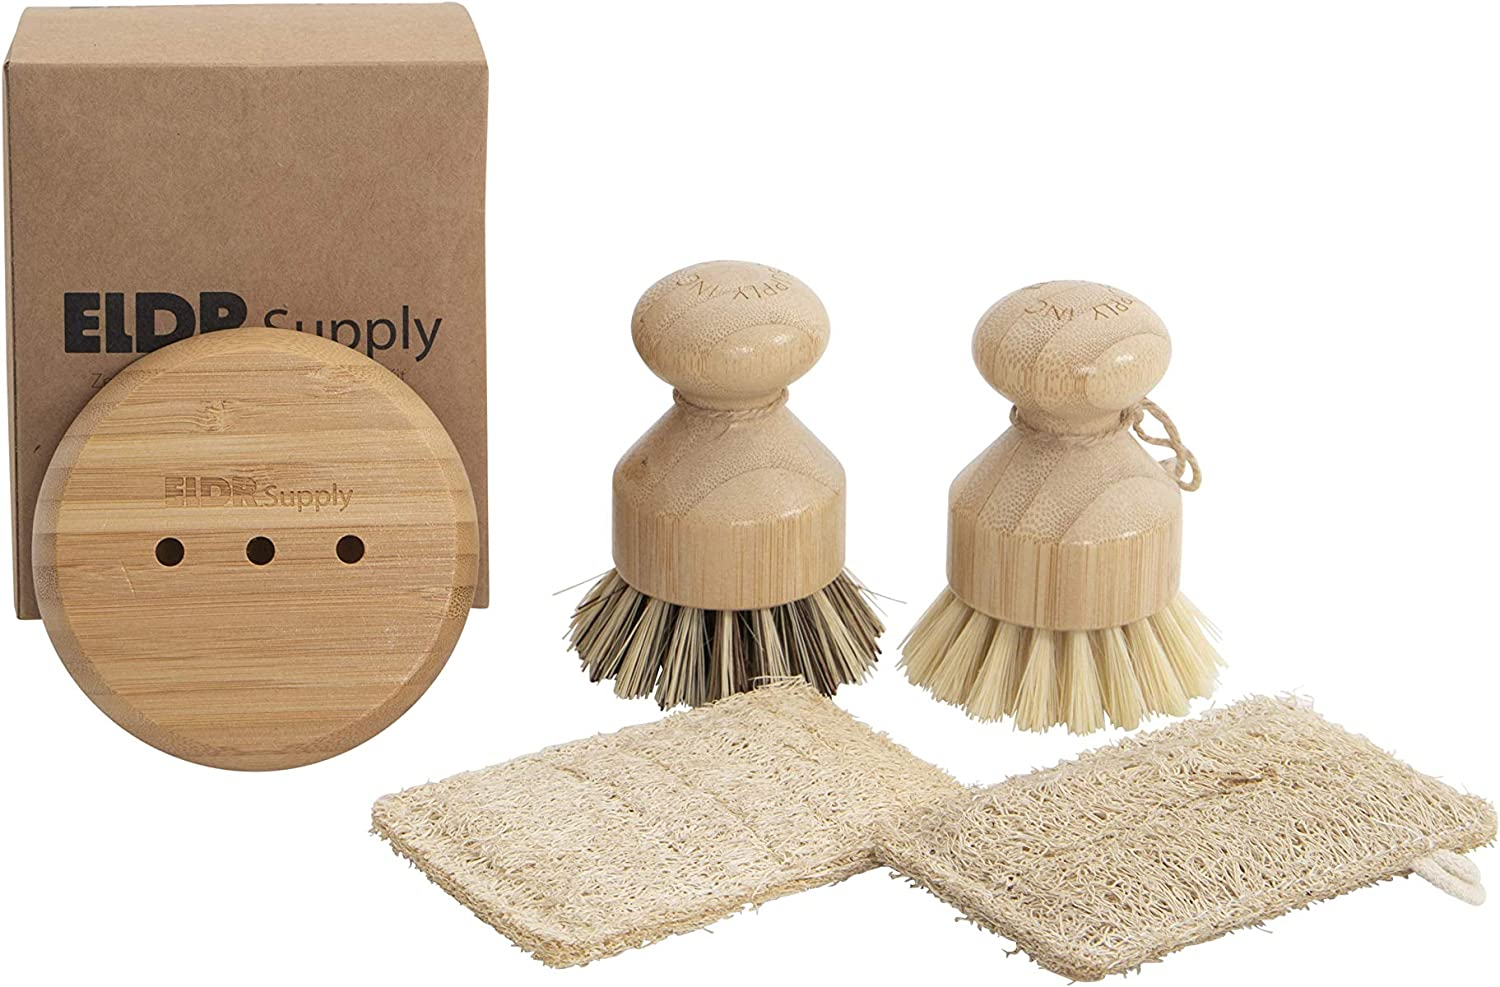 Zero Waste Dish Cleaning Starter Kit, Two Biodegradable Pot and Dish Brushes, Two Natural Loofah Sponges, Bamboo Soap Tray. Kitchen Set for Plates, Fruits, Vegetables, and Cast Iron Cookware